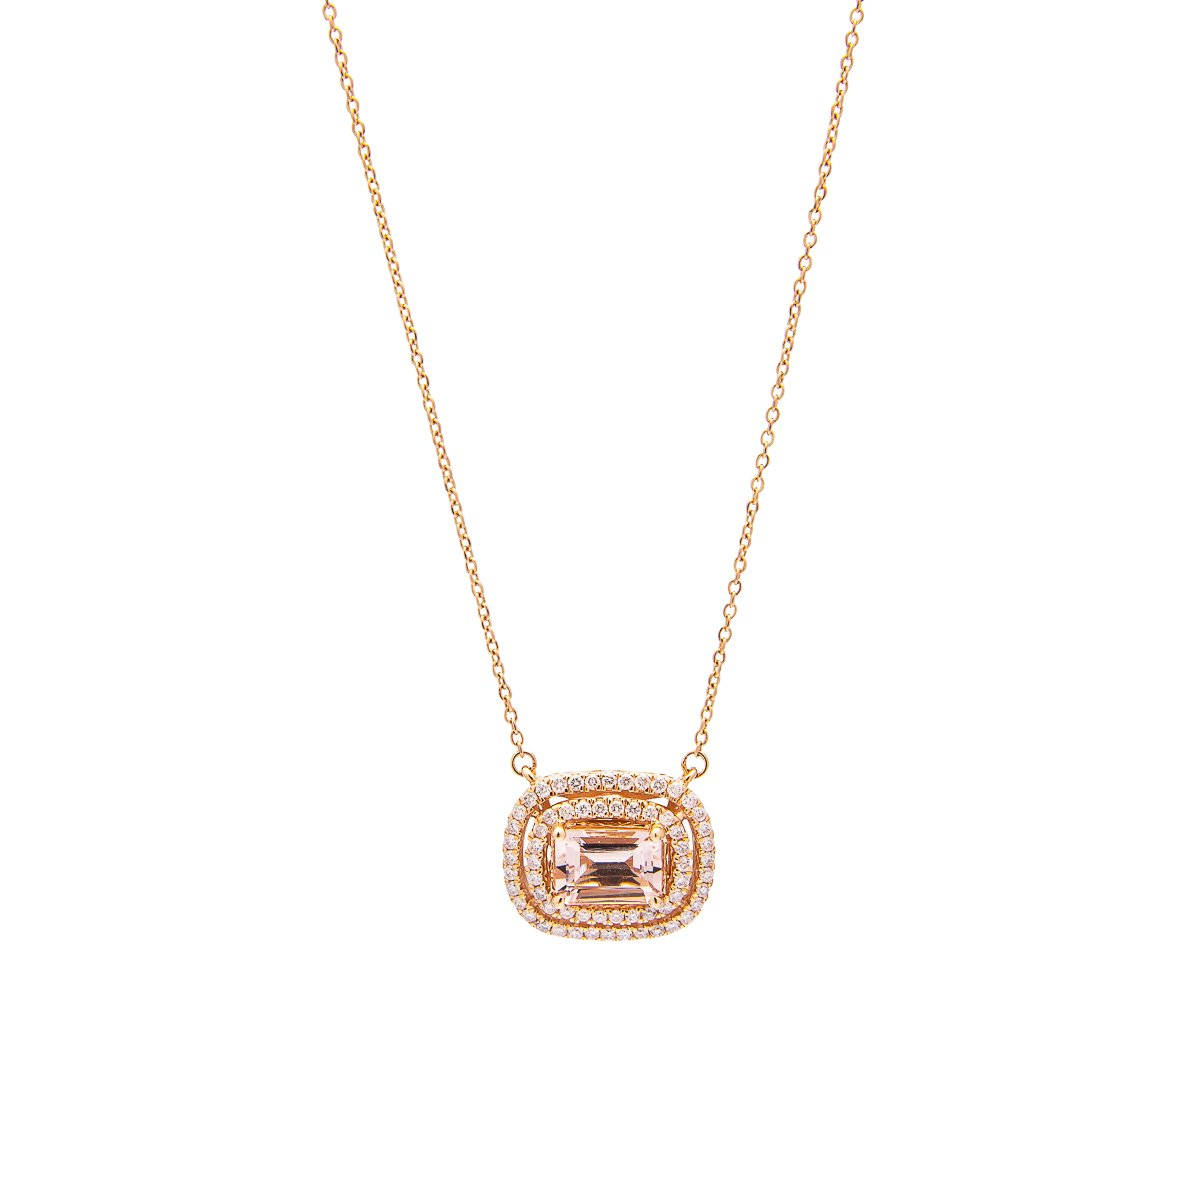 Sabel Collection 14K Rose Gold Emerald Cut Morganite and Diamond Pendant